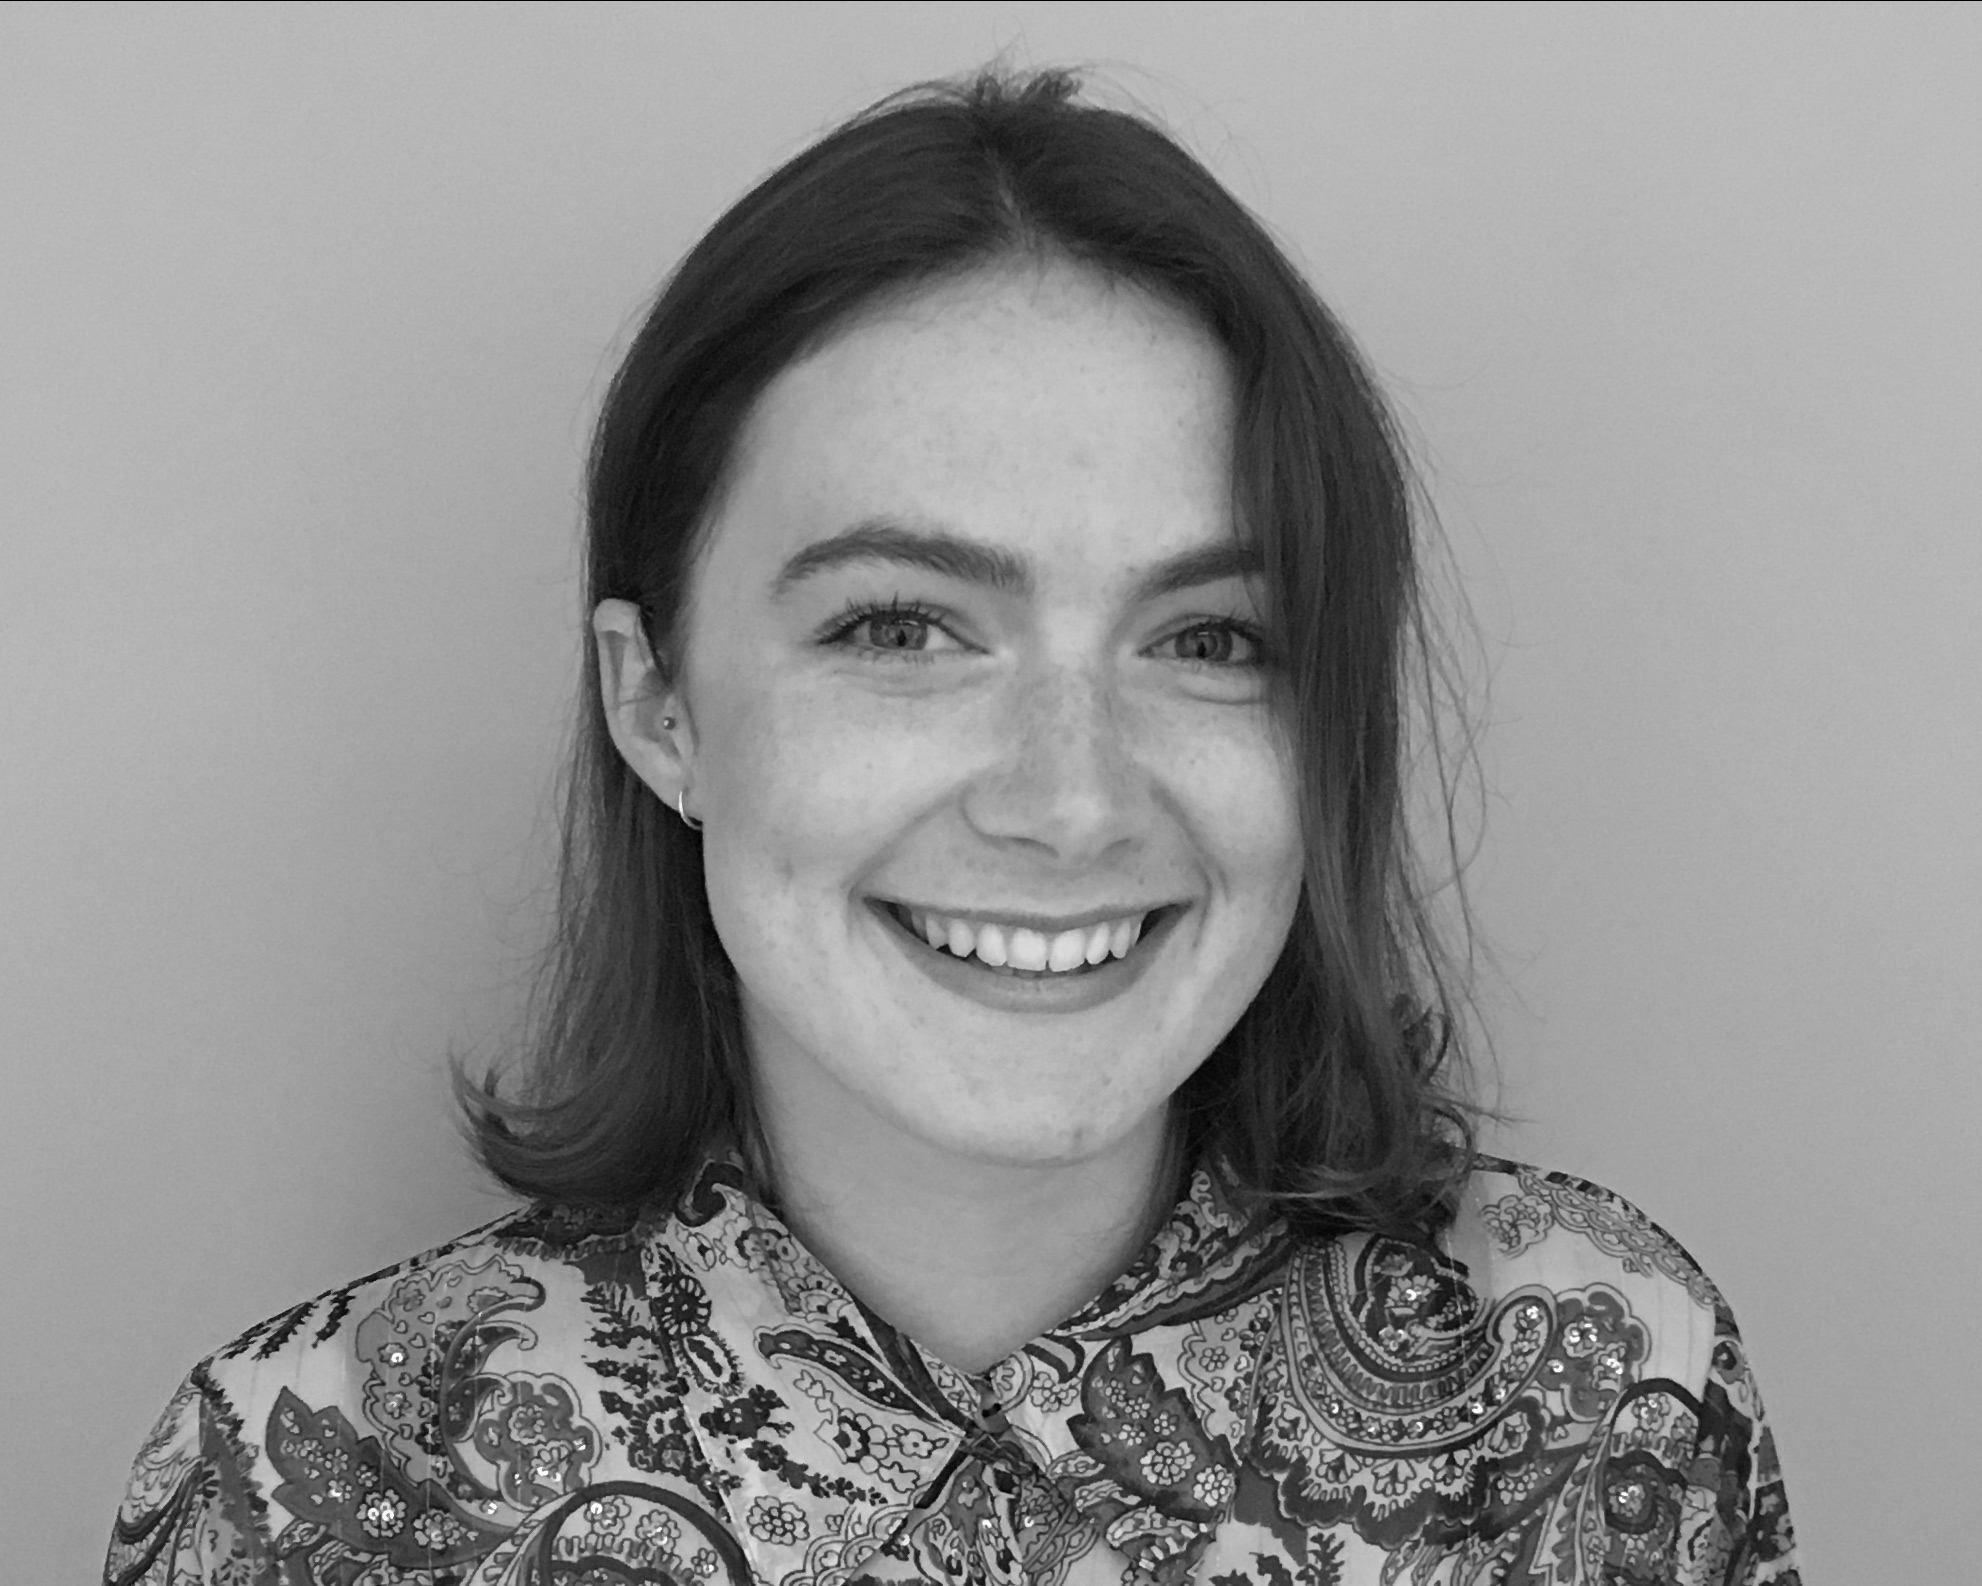 Mairi graduated with a Masters in Civil Engineering from the University of Edinburgh, before joining BuroHappold as a graduate in […]